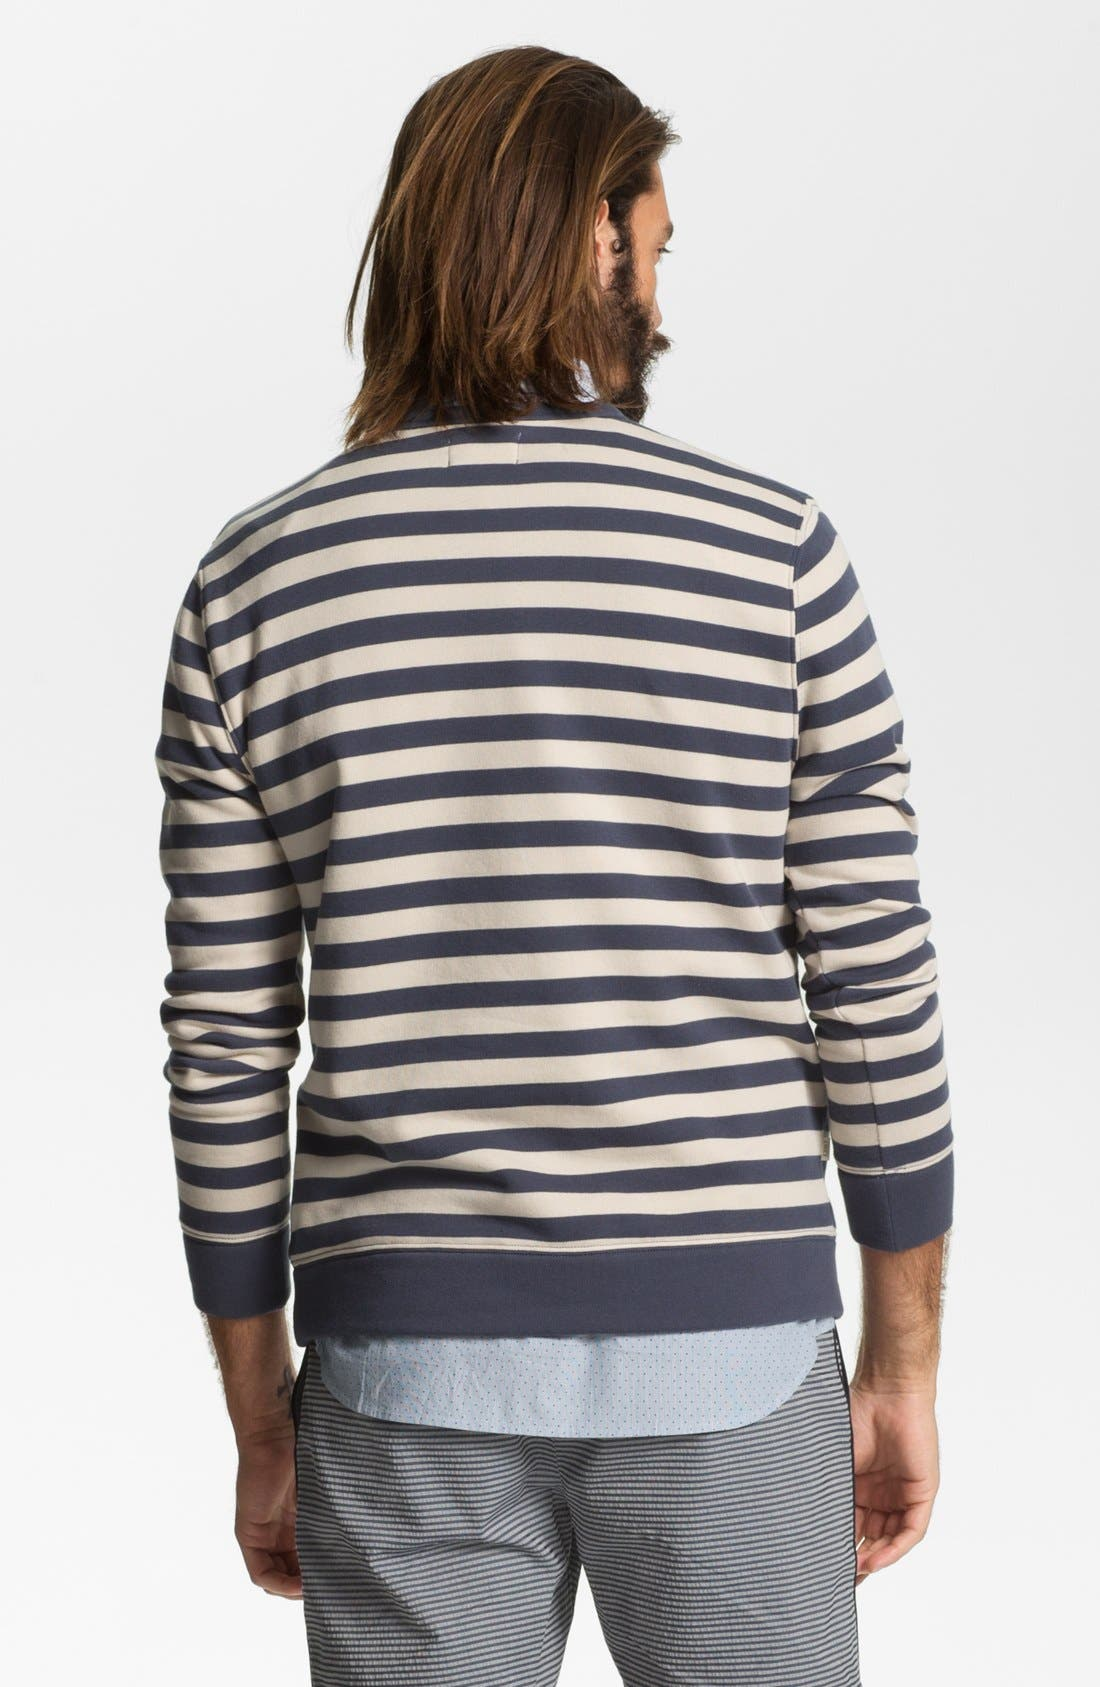 Alternate Image 2  - Obey 'Dano' Stripe Crewneck Sweatshirt